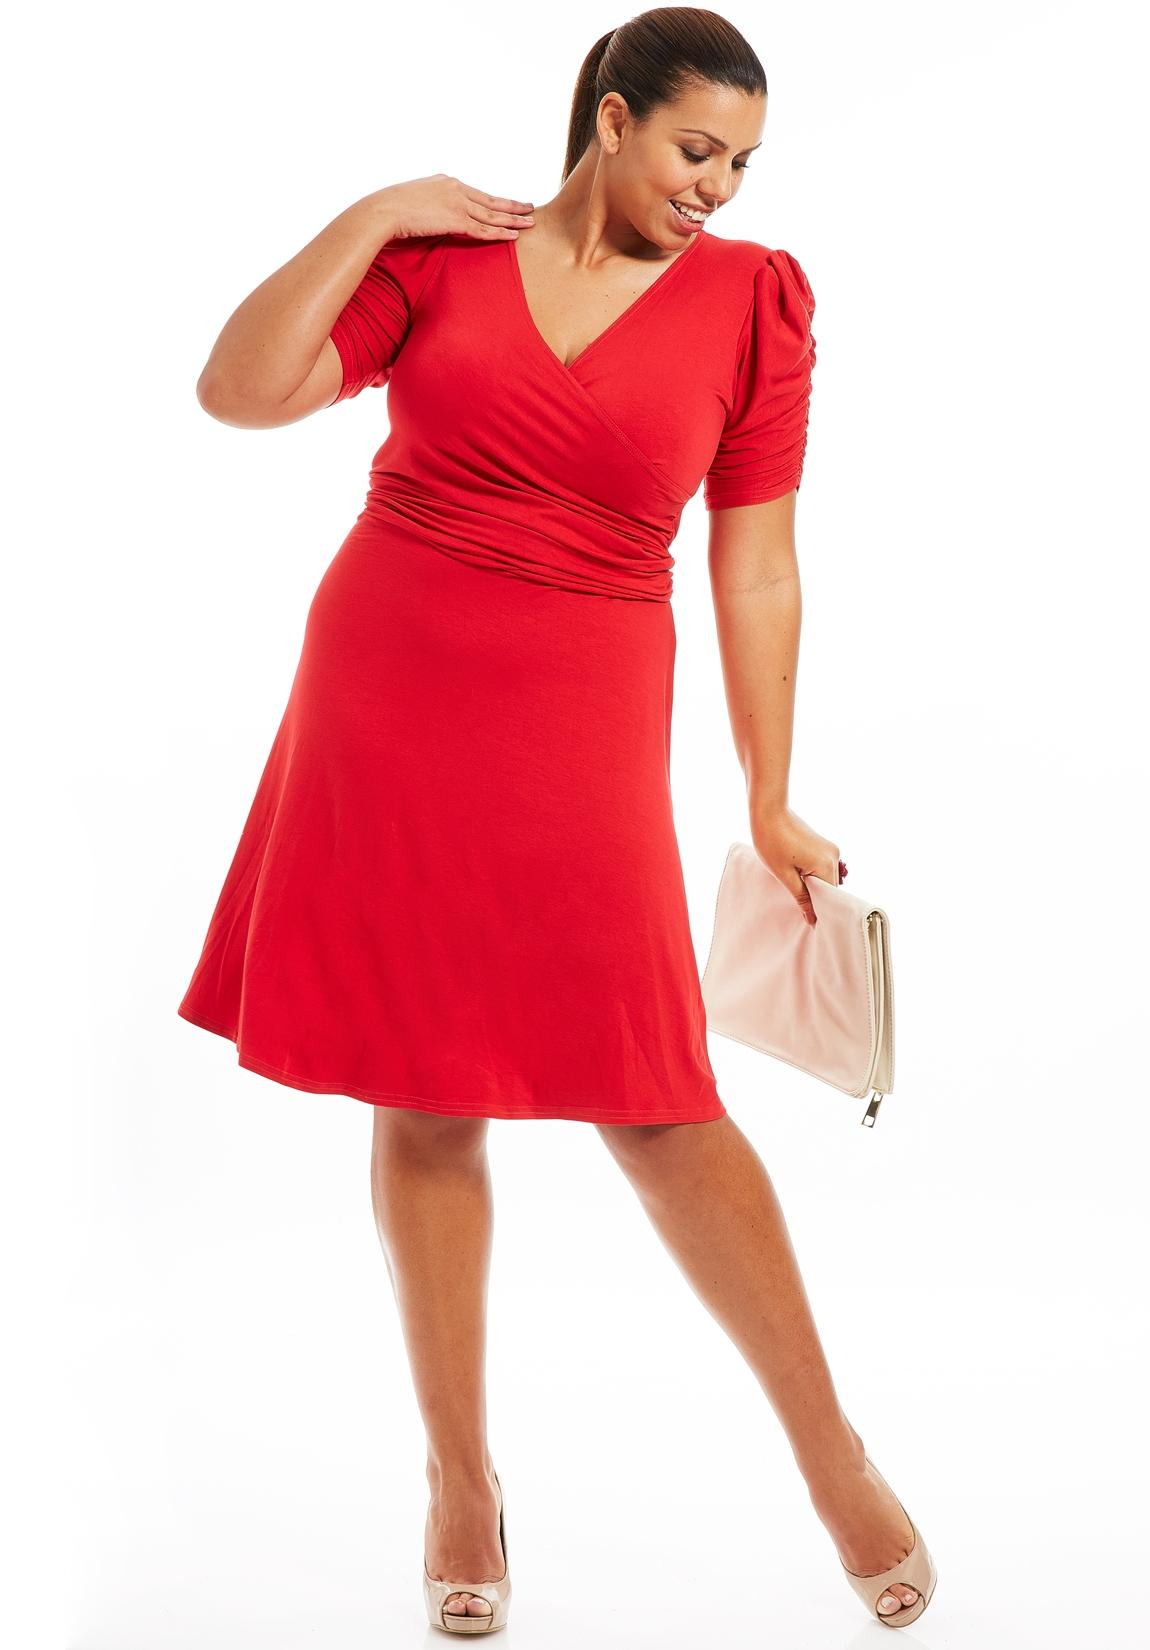 Robe rouge femme ronde